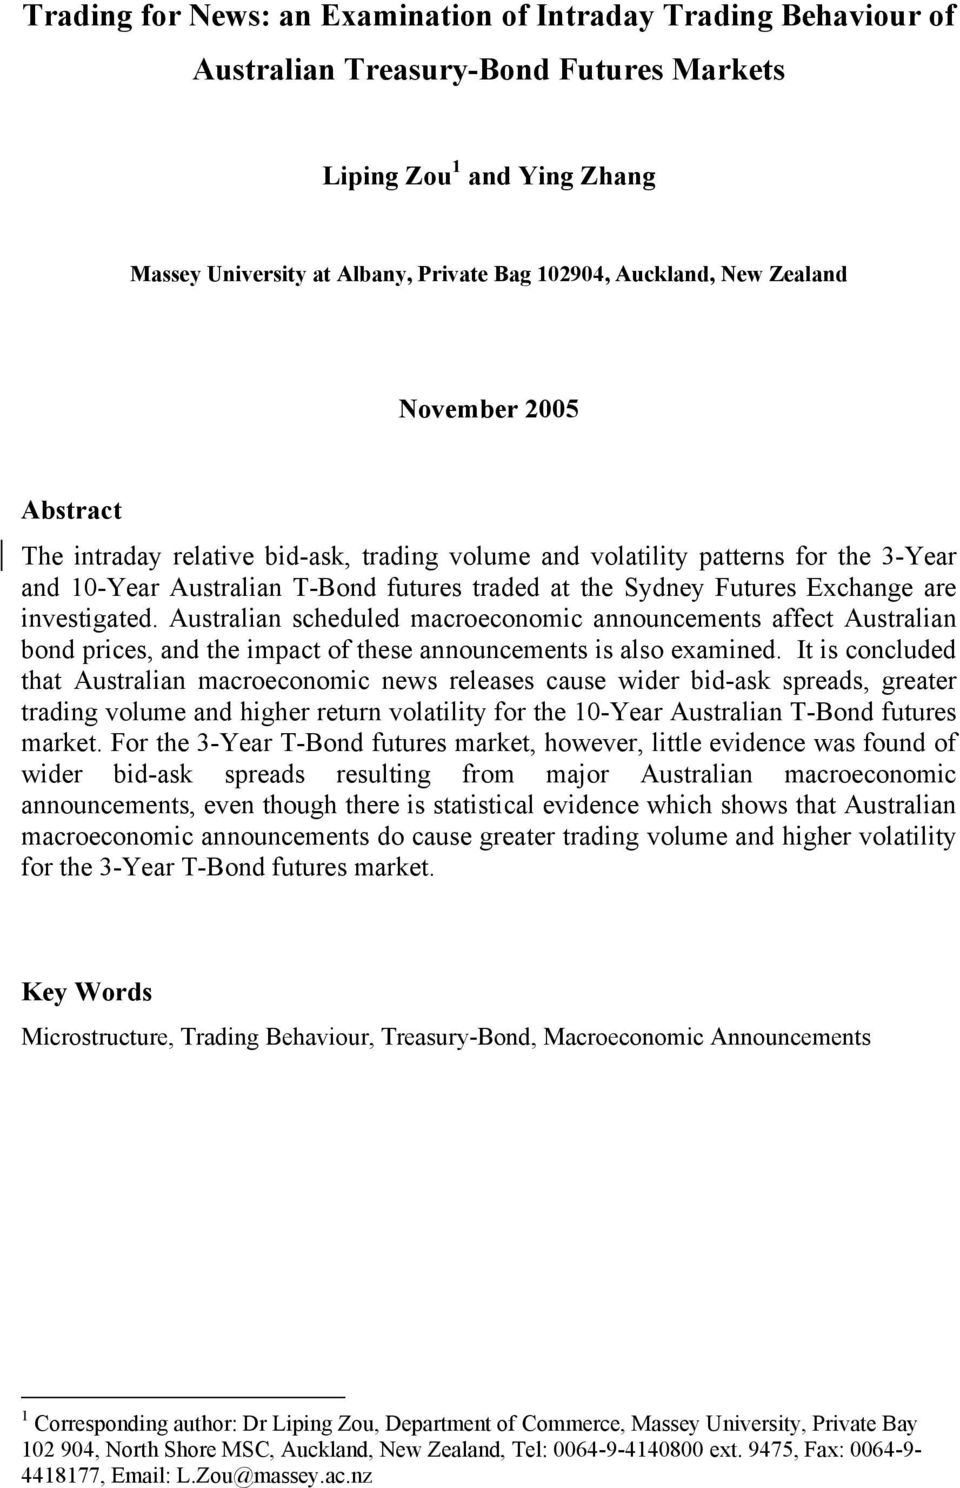 investigated. Australian scheduled macroeconomic announcements affect Australian bond prices, and the impact of these announcements is also examined.